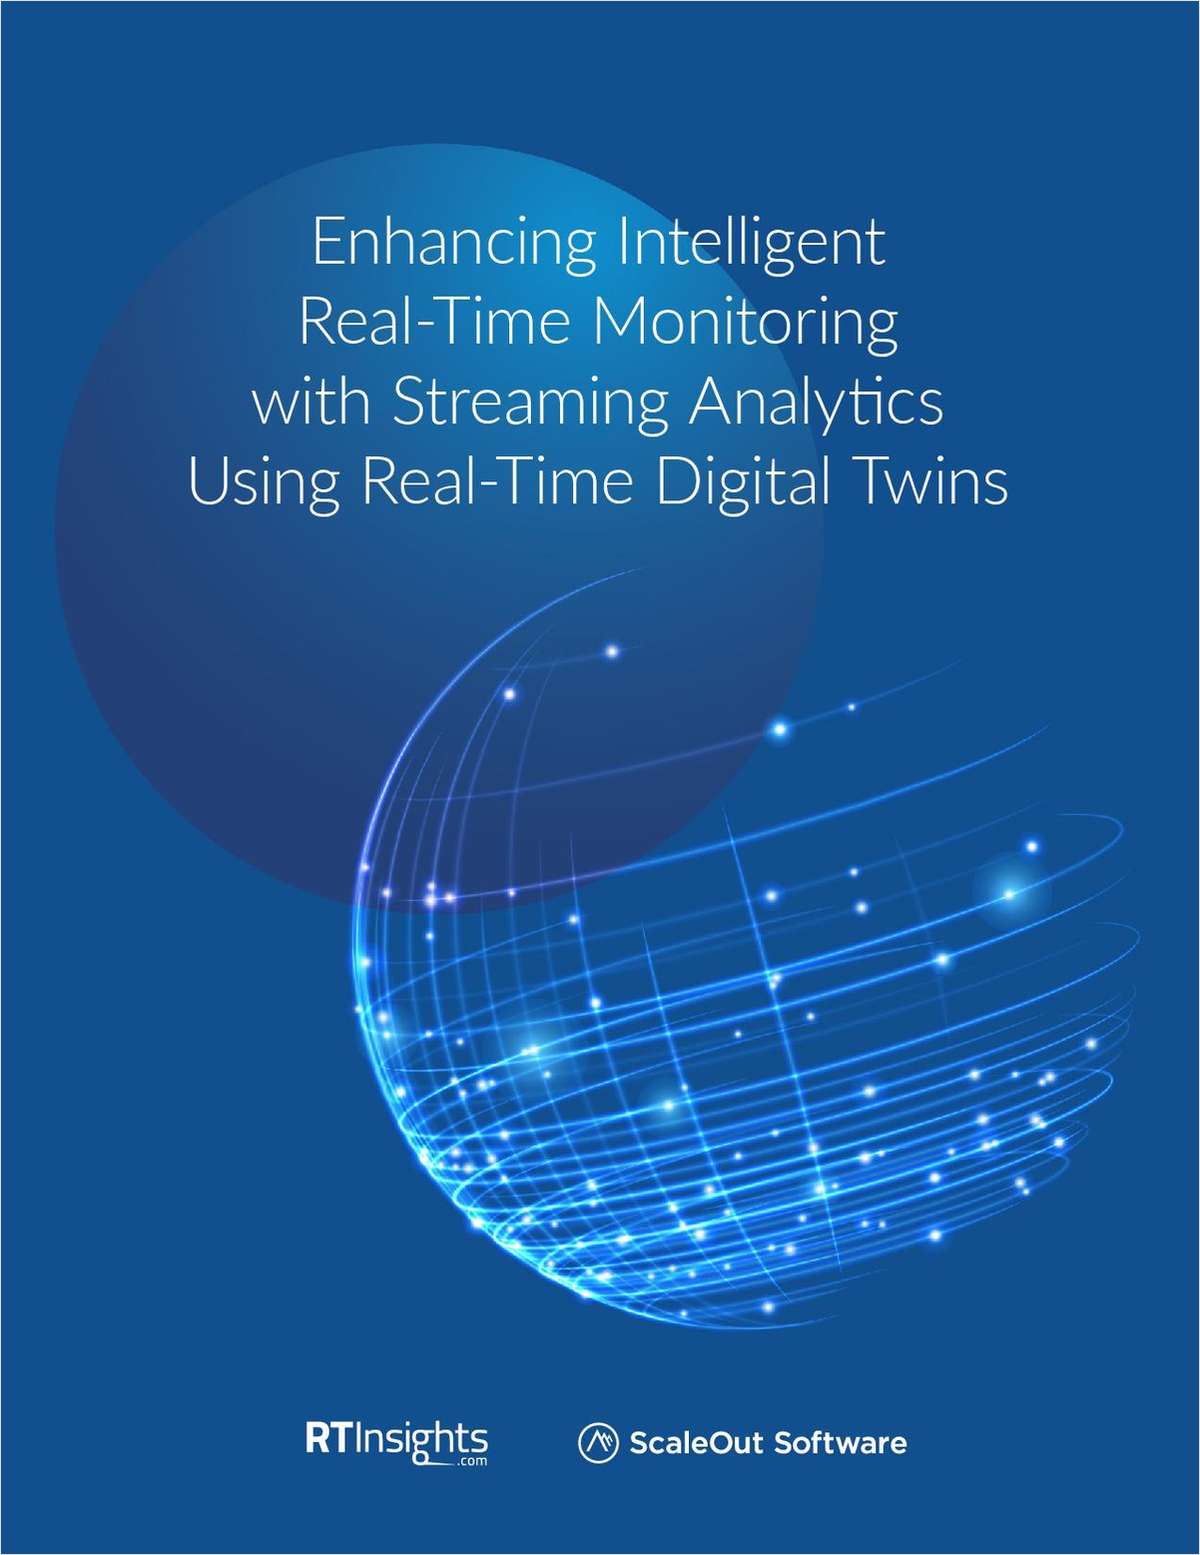 Enhancing Intelligent  Real-Time Monitoring with Streaming Analytics Using Real-Time Digital Twins